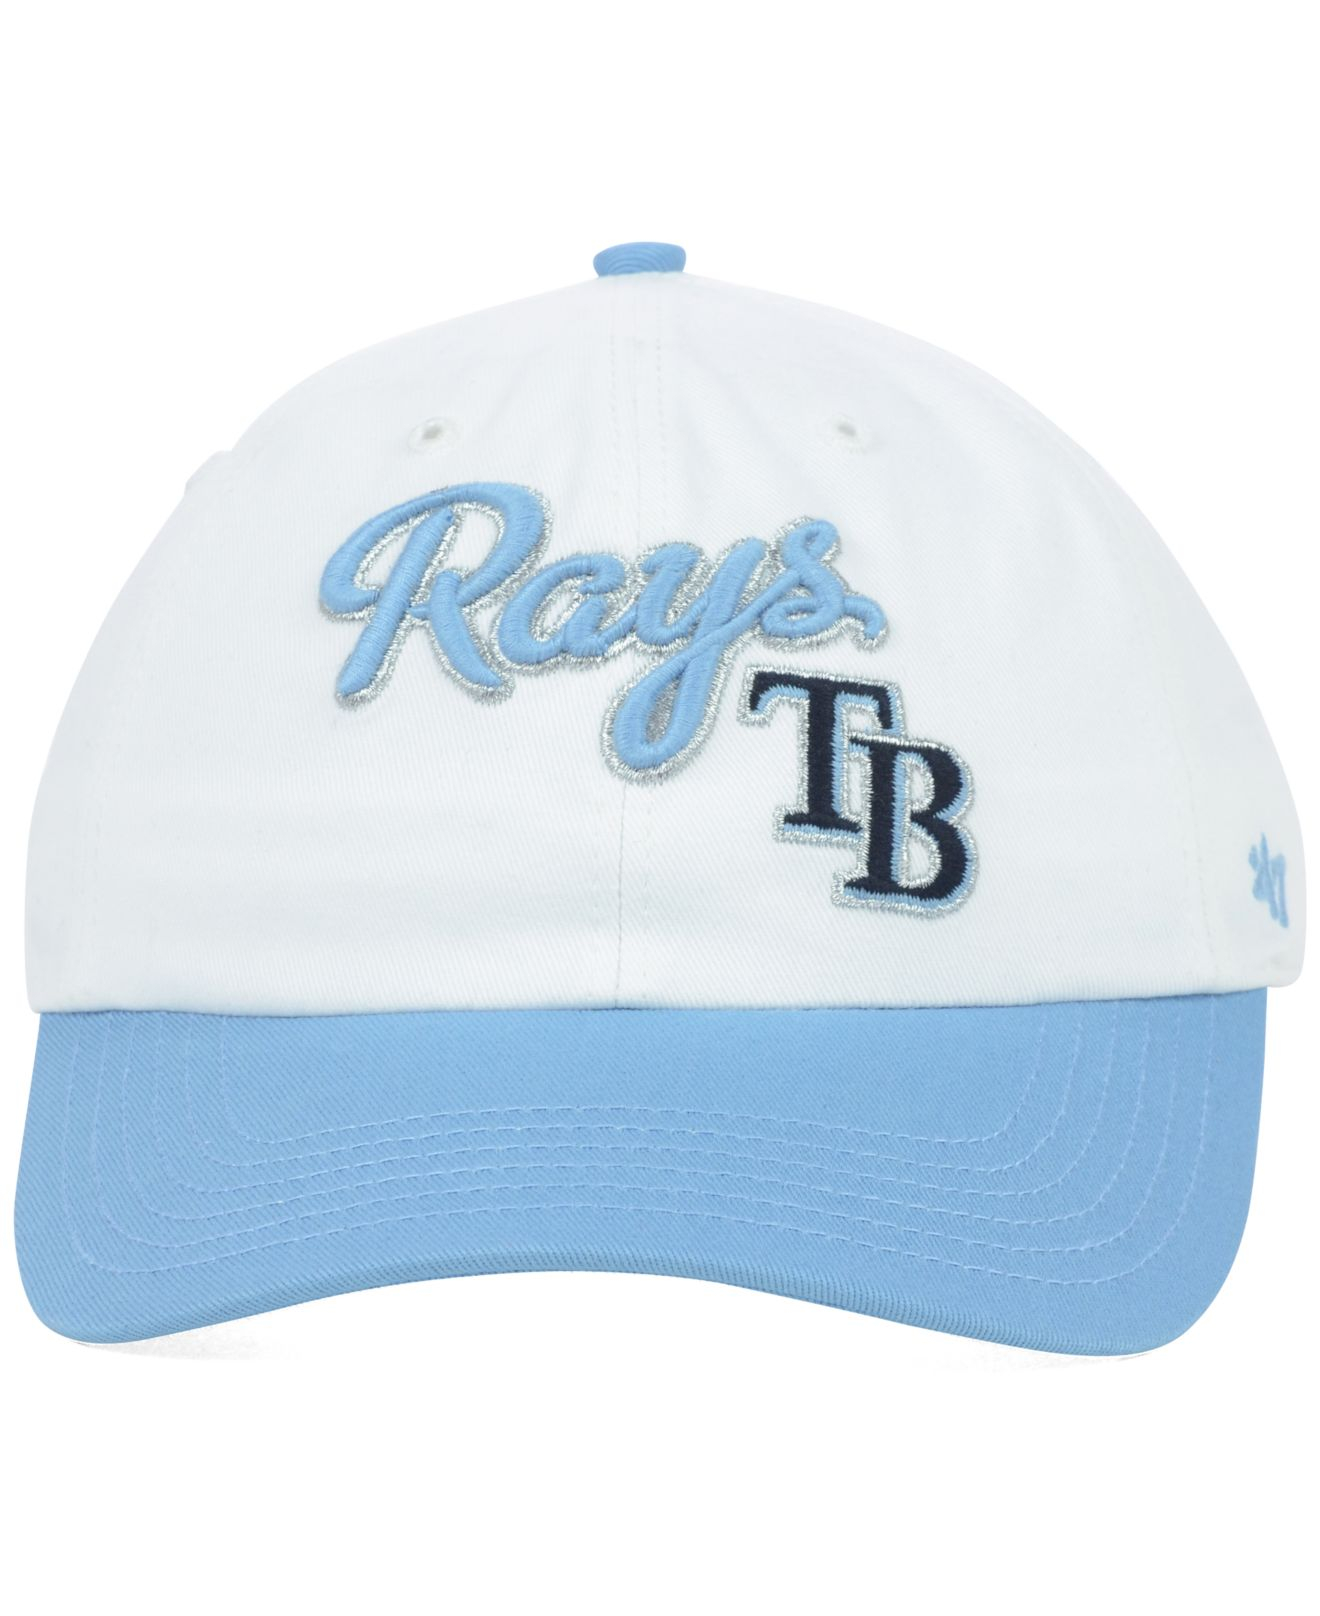 reputable site 12c4a 535c2 Lyst - 47 Brand Women s Tampa Bay Rays Beth Cap in Blue